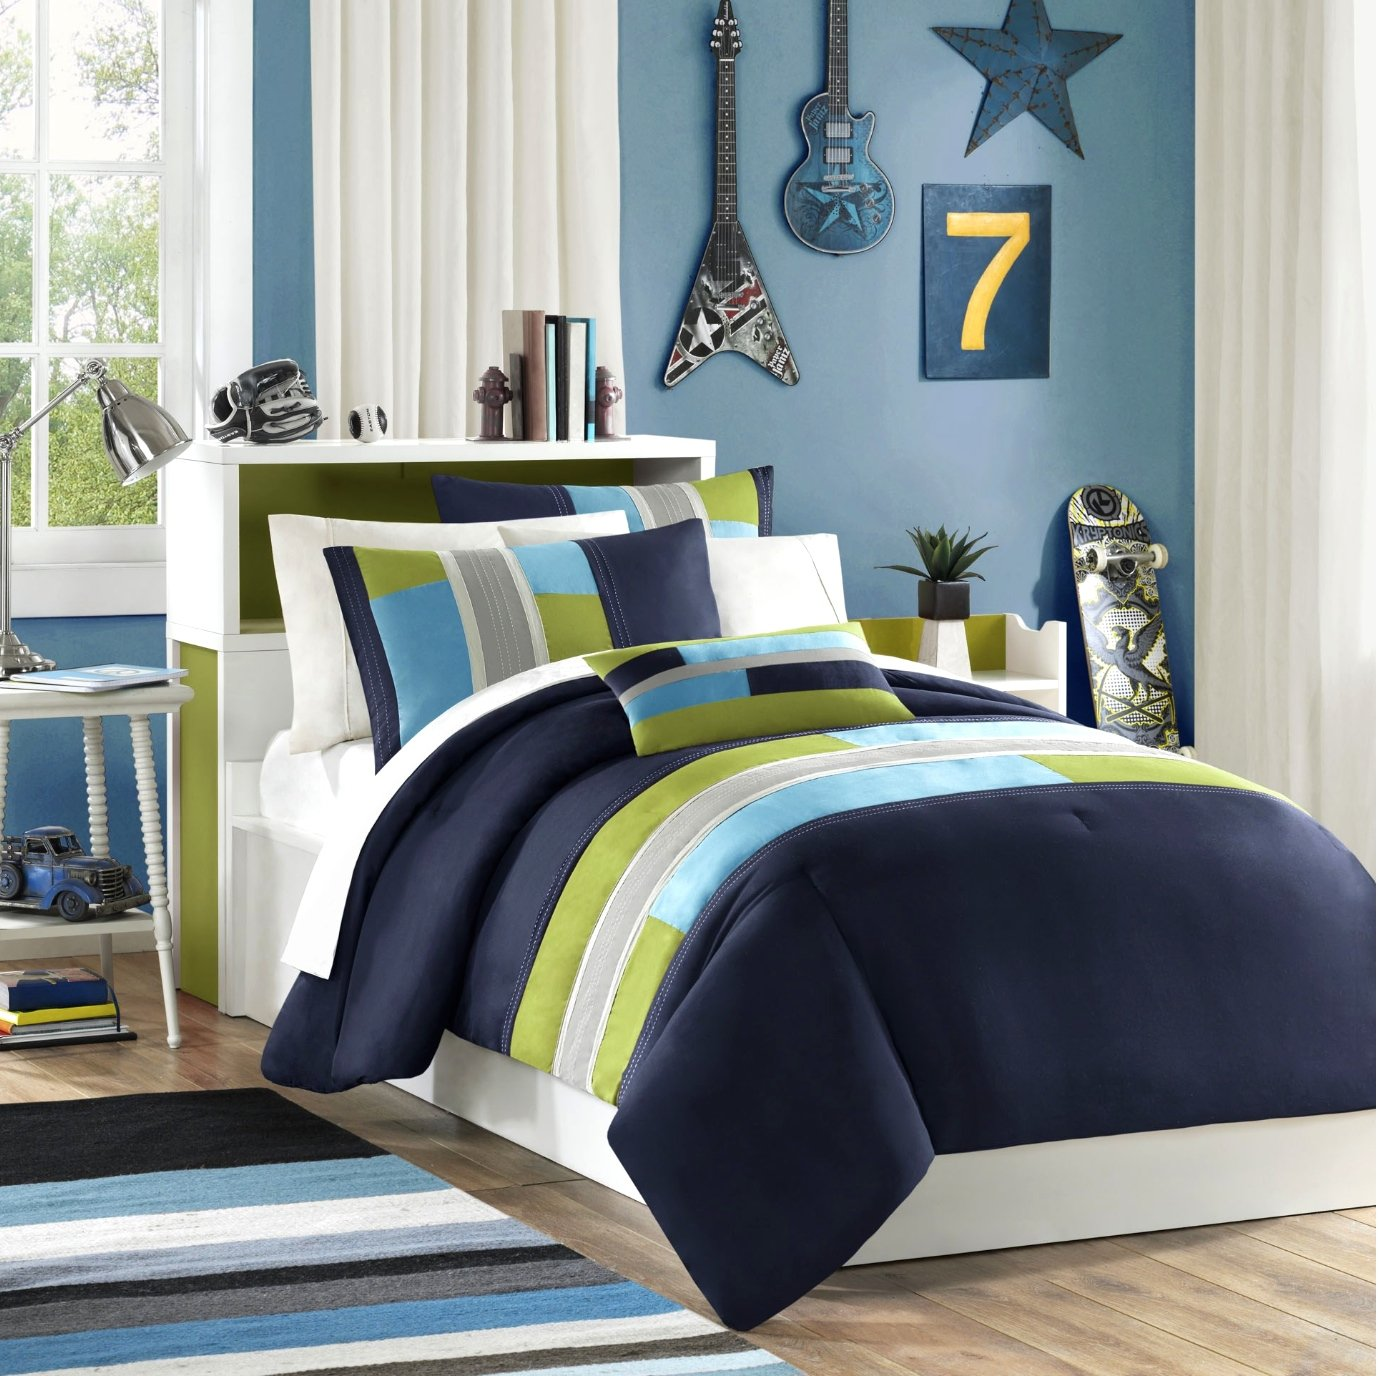 Navy, Teal, Light Green Boys Twin Comforter and Sham Set